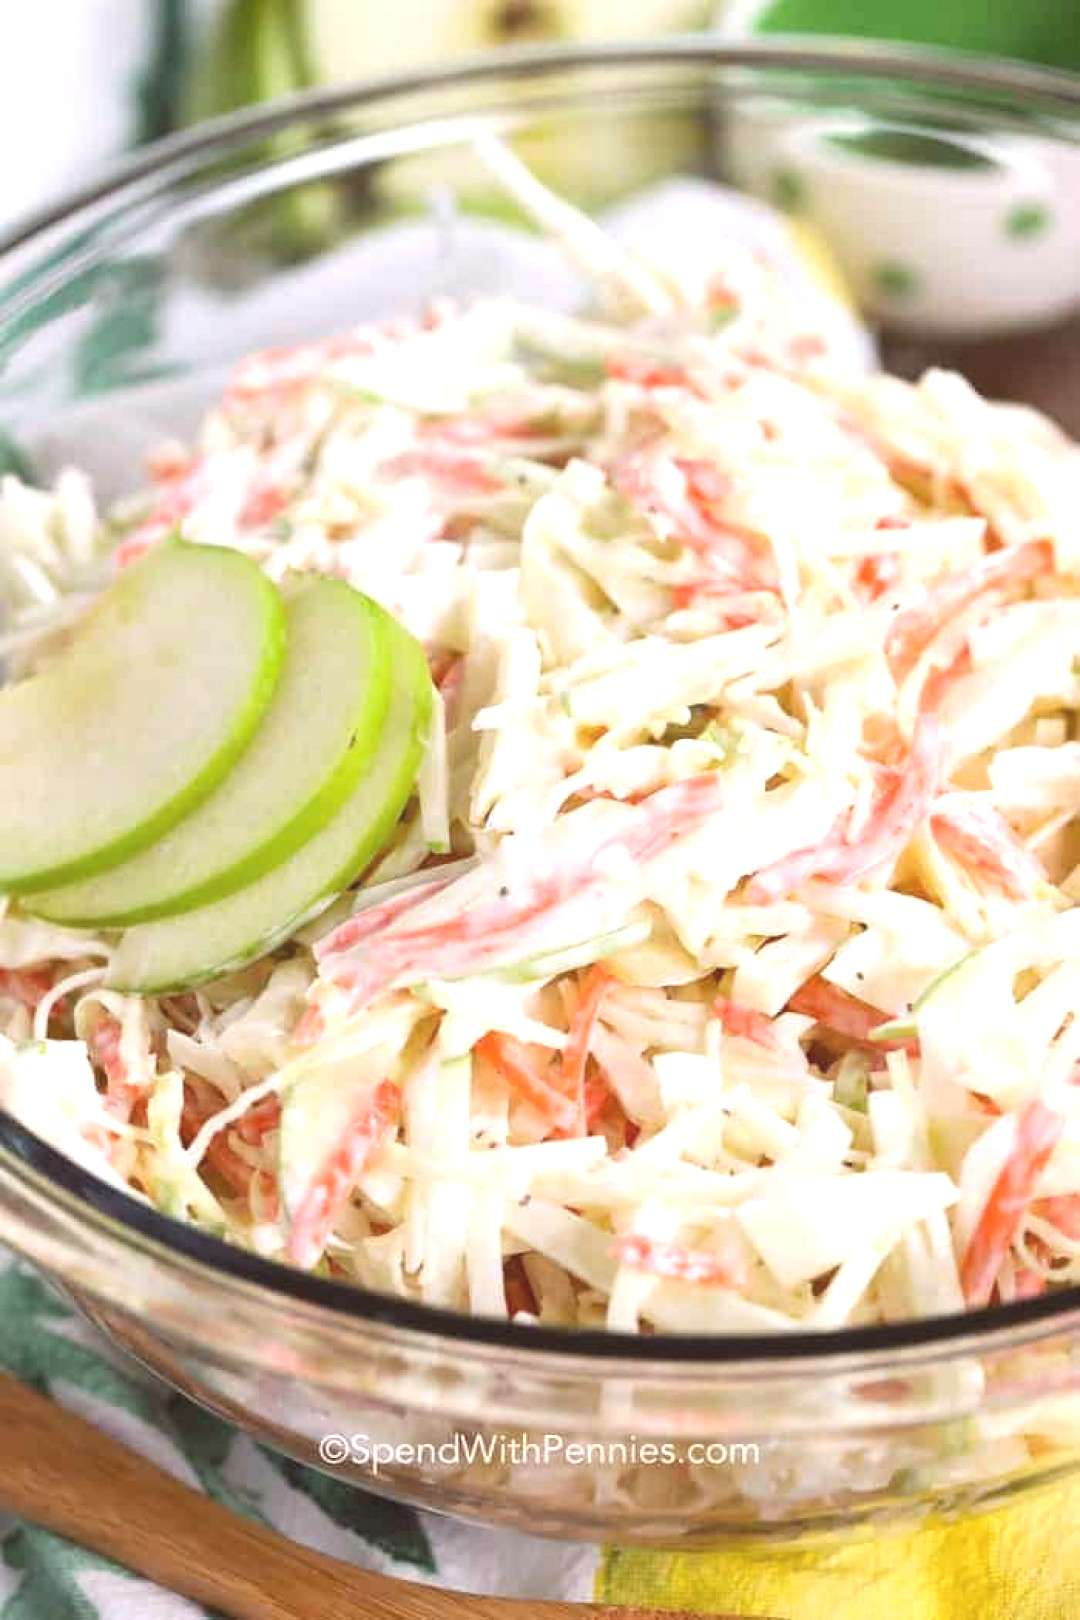 Creamy Apple Slaw Recipe - Spend With Pennies Creamy Apple Slaw Recipe - Spend With Pennies,